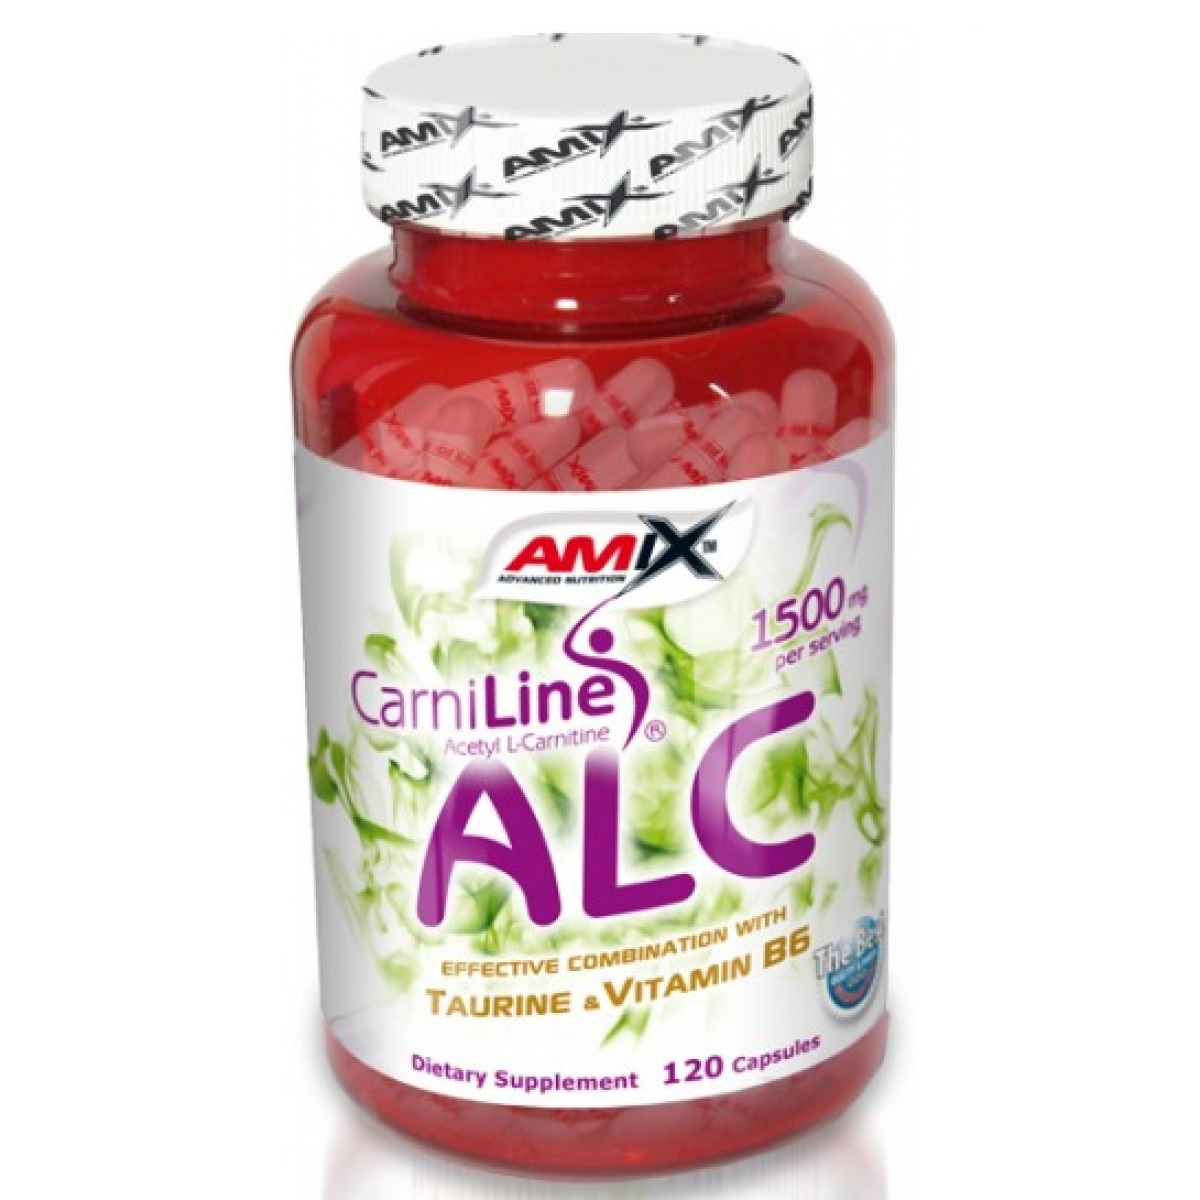 AMIX Alc (with Taurin & Vitamine B6)